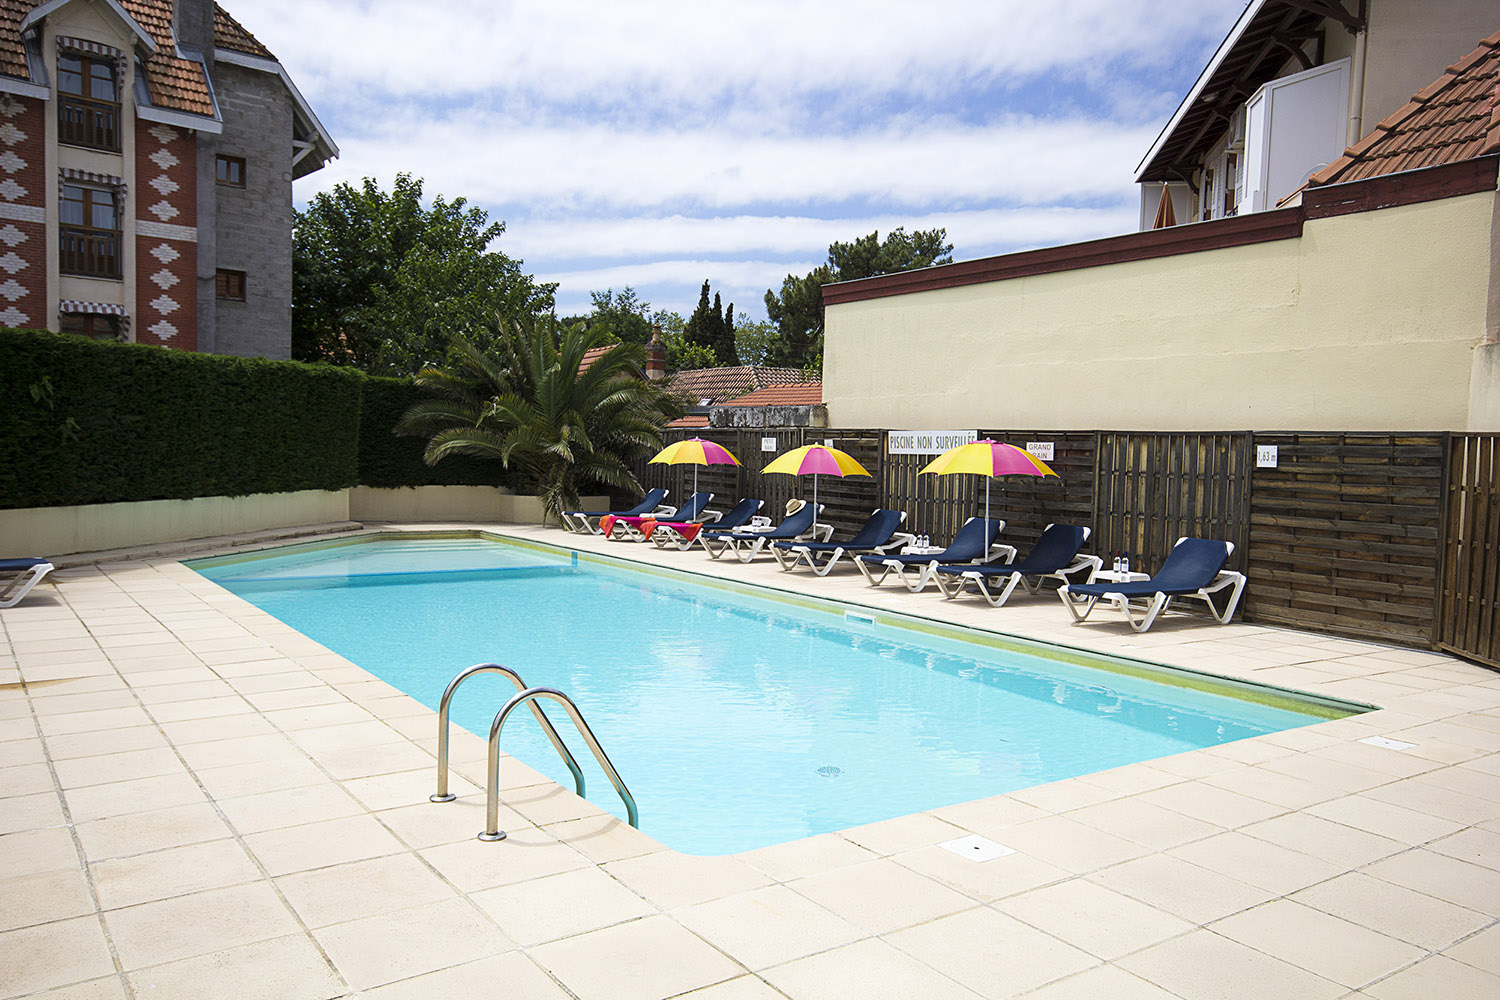 H tel arcachon le dauphin i site officiel for Piscine arcachon